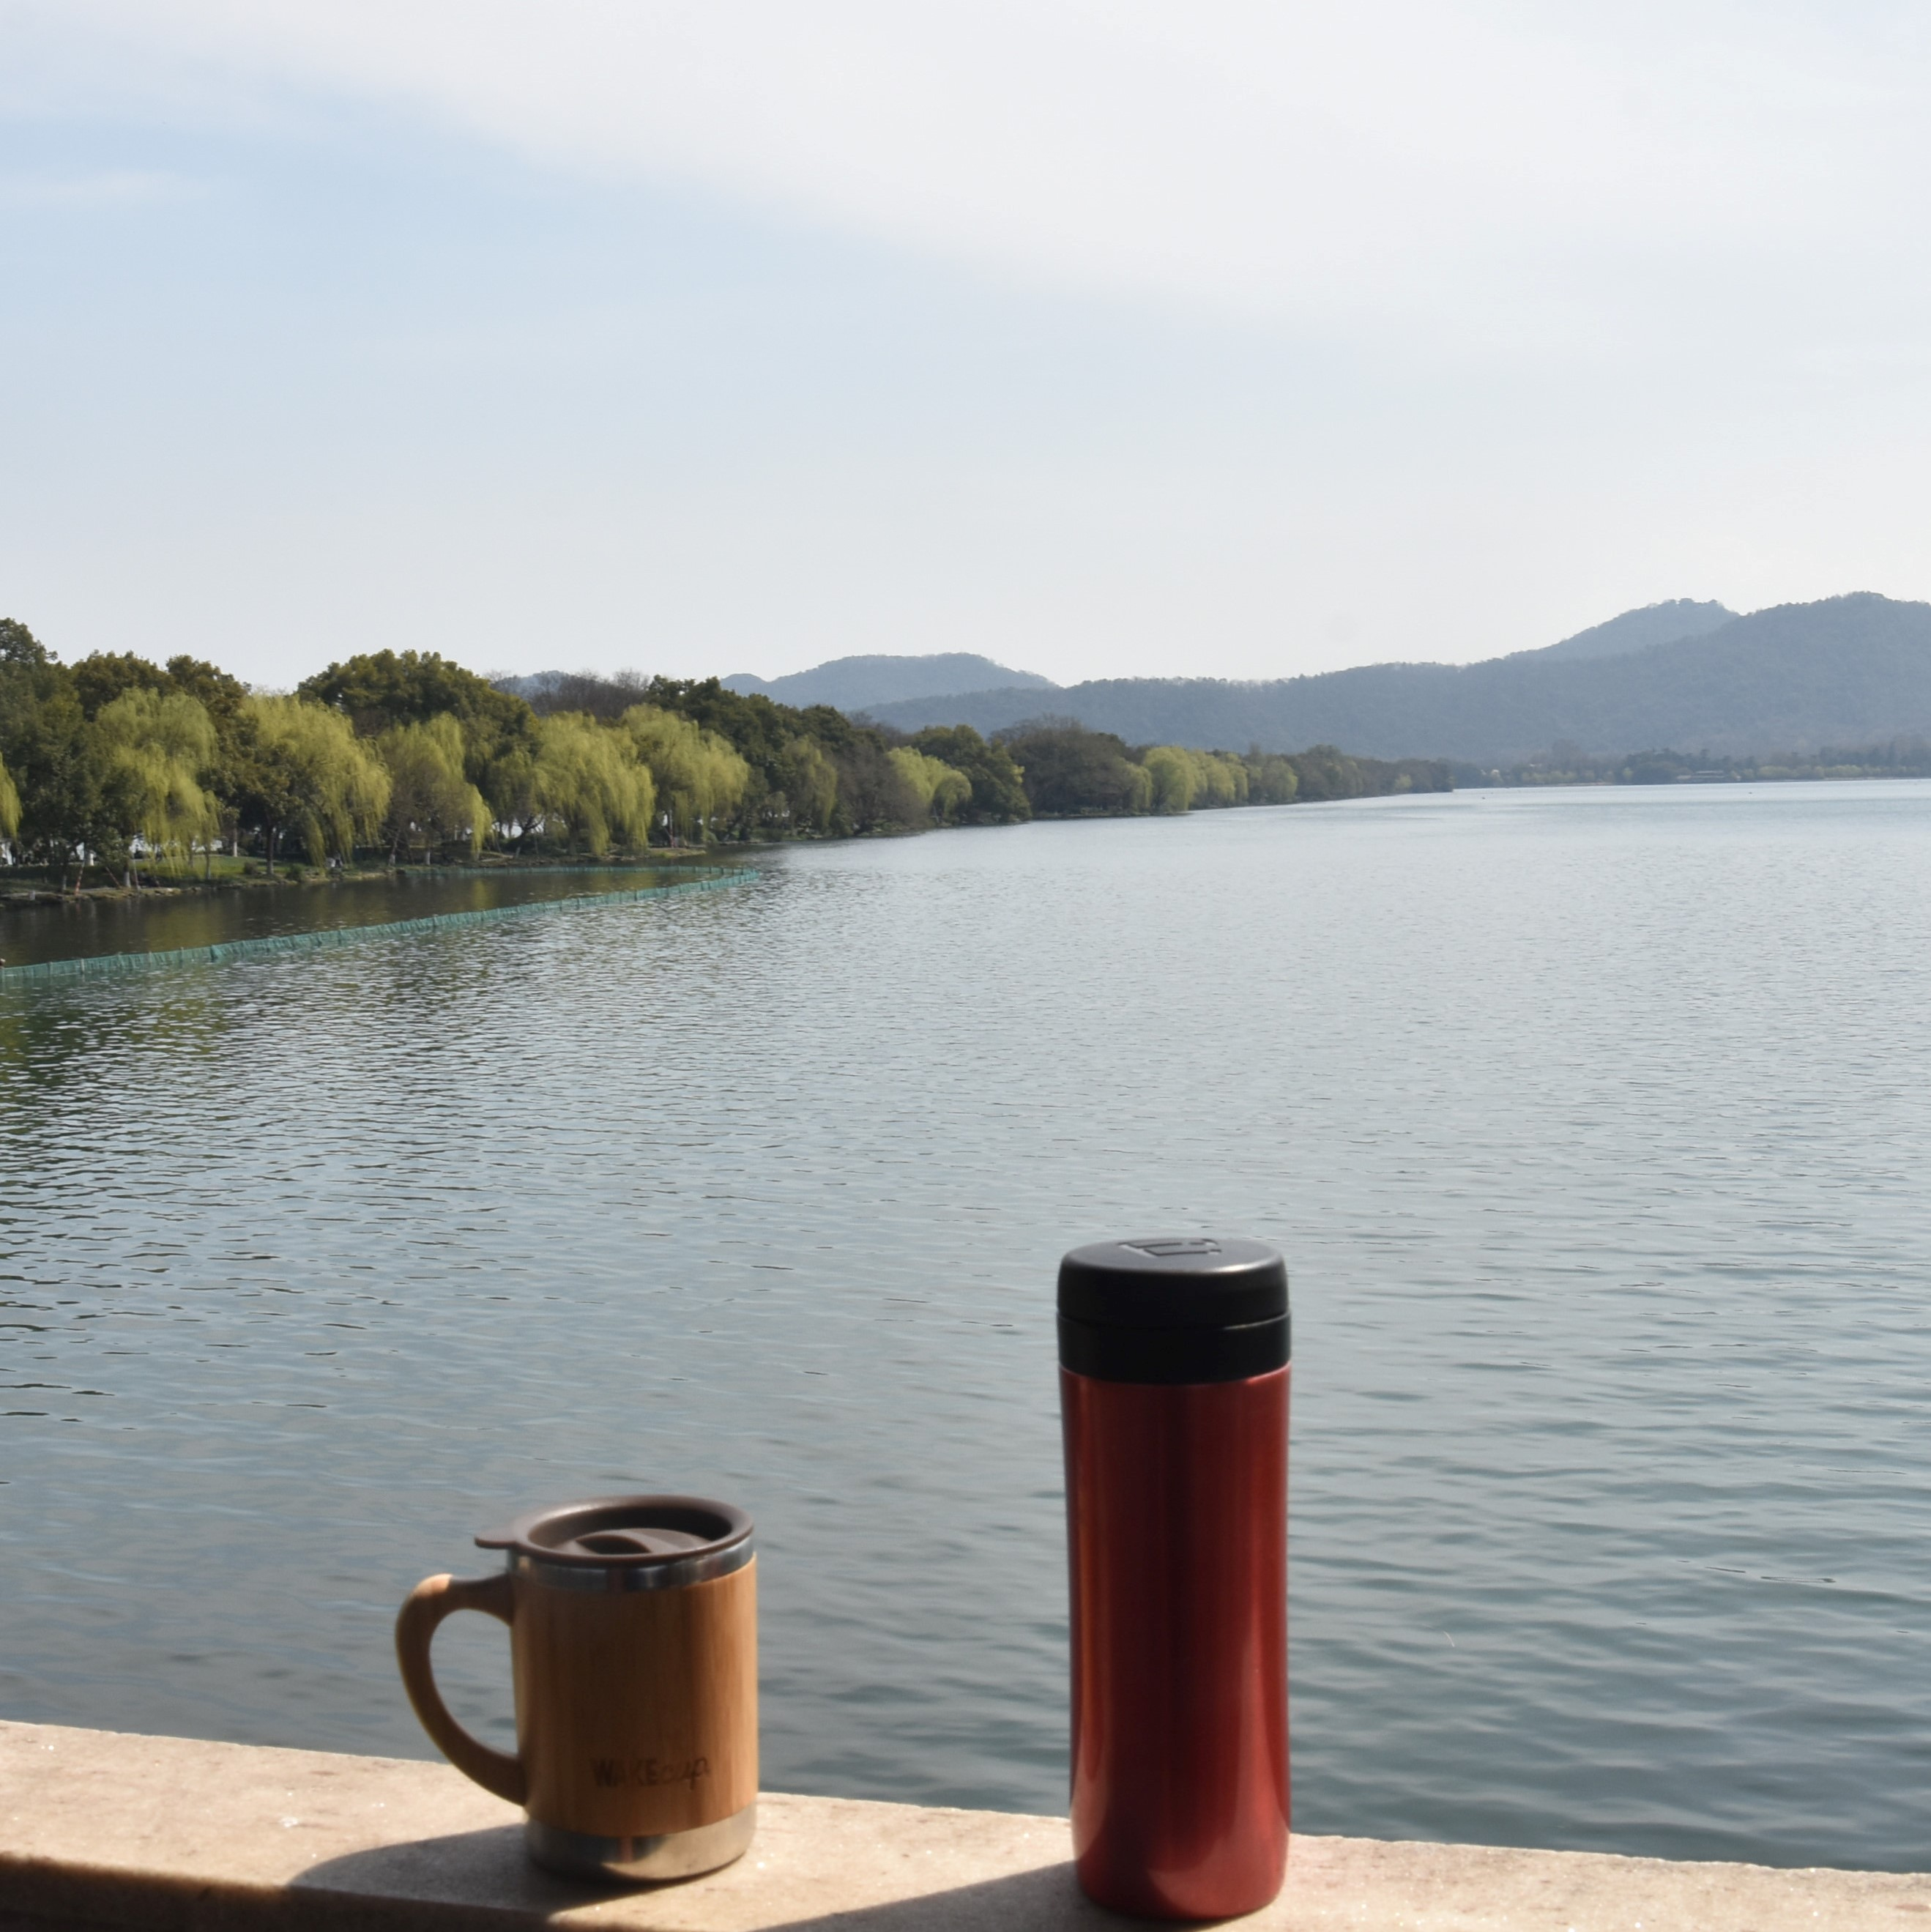 My coffee, in the shape of my Global WAKEcup and Espro Therma Pres, overlook the West Lake in Hangzhou from the Fair Rainbow Bridge on a recent trip to China.